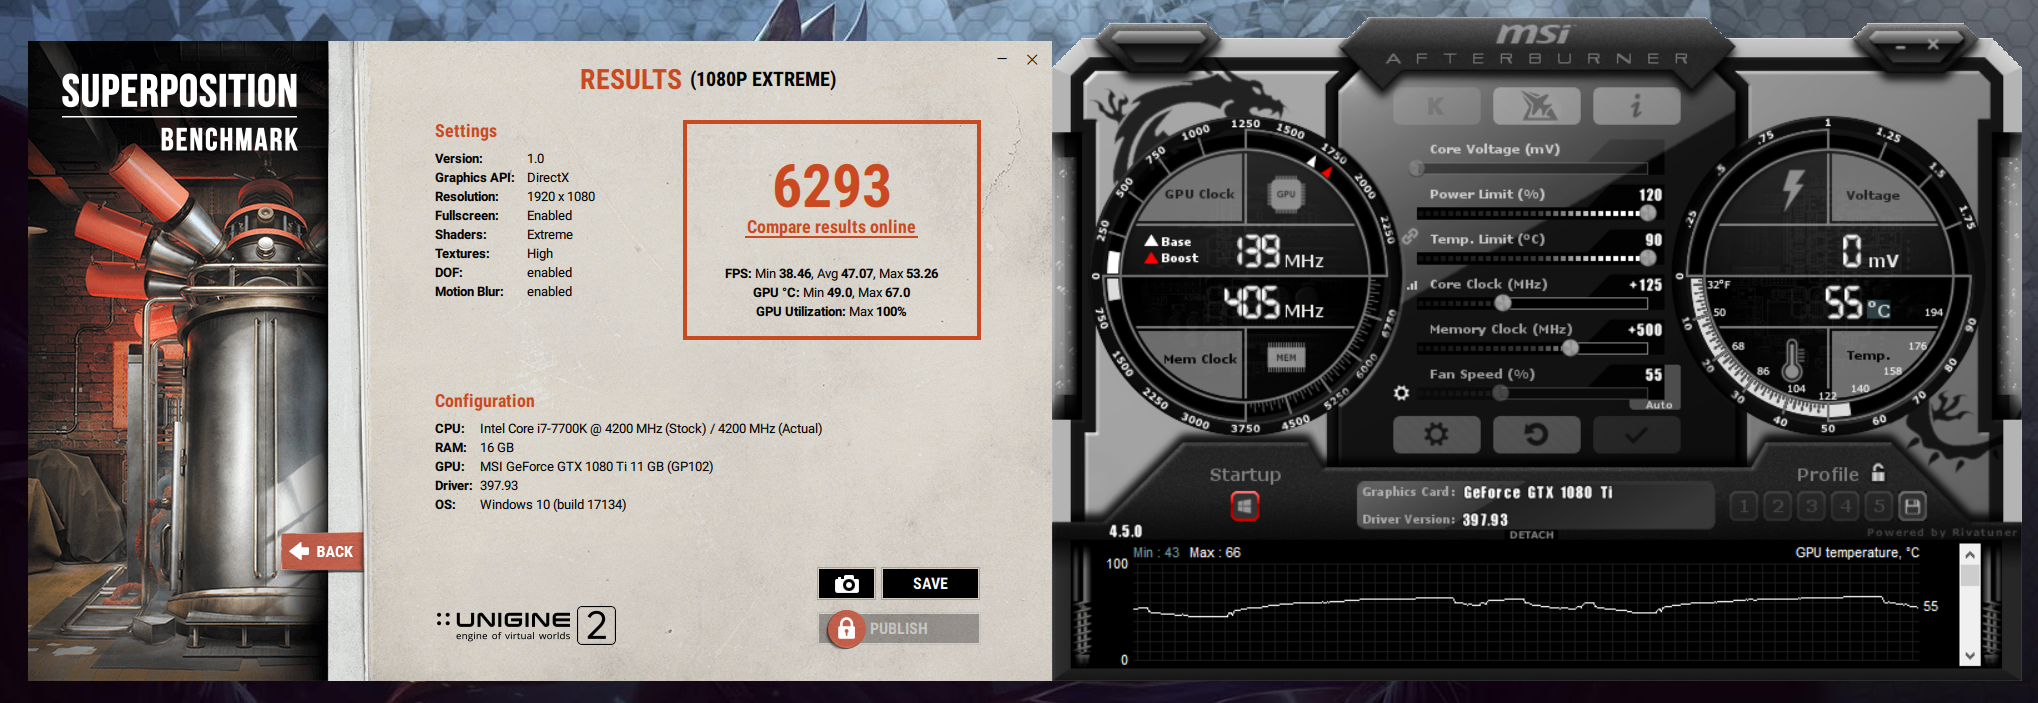 Need opinion for my Superposition benchmark - Graphics Cards - Linus